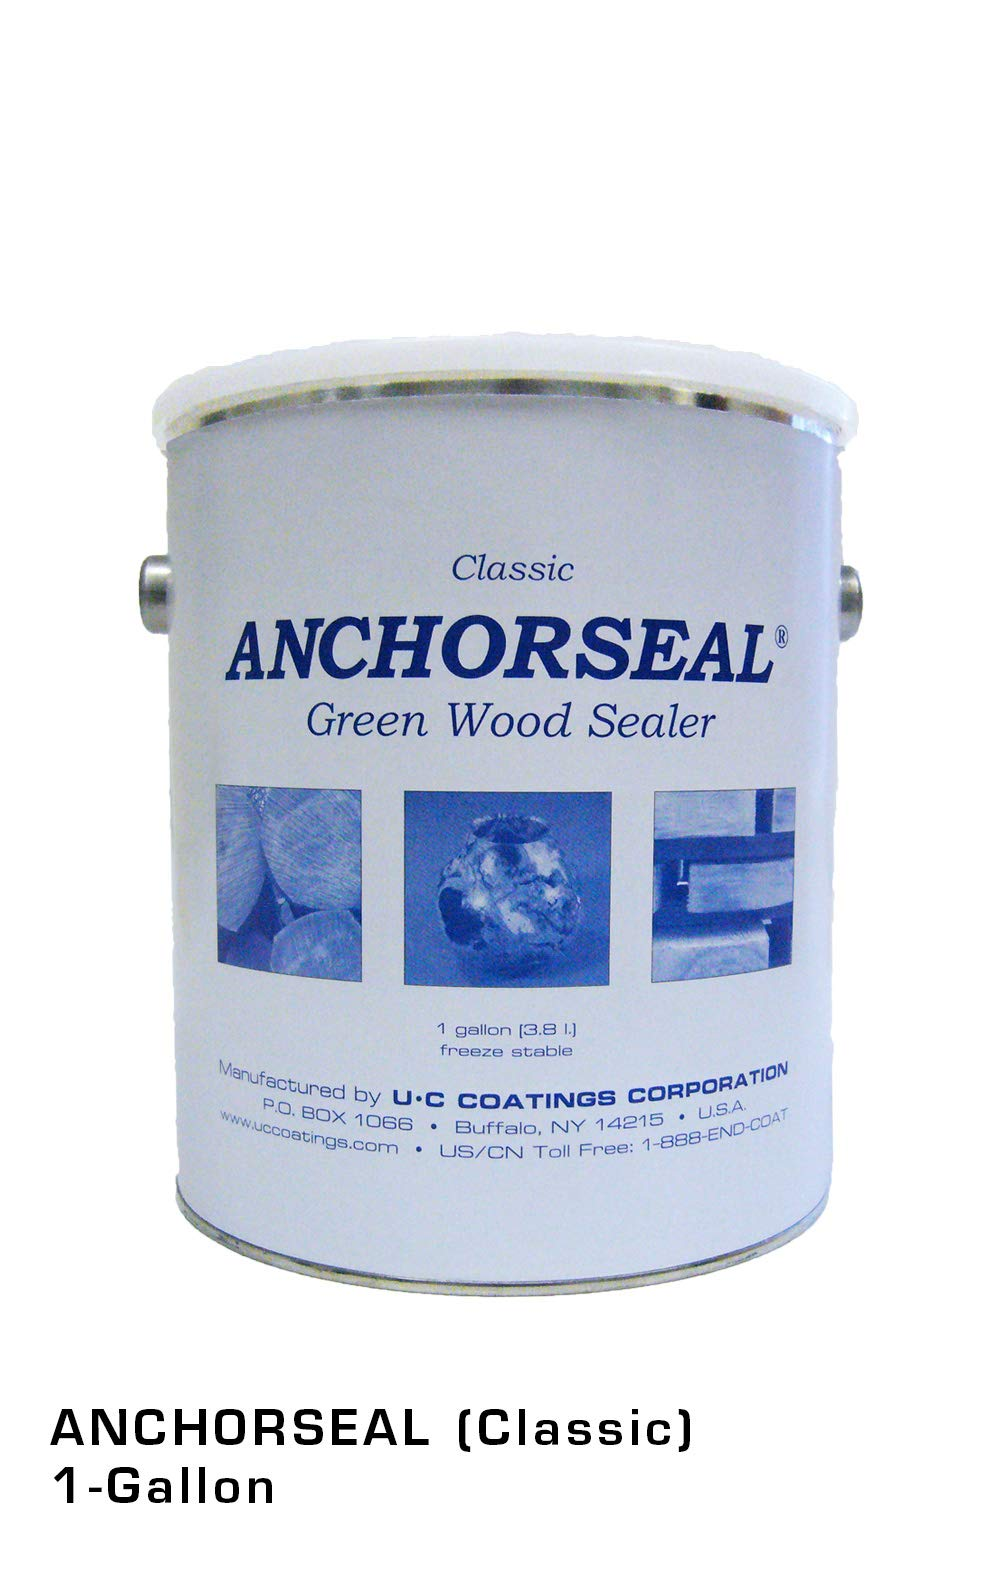 ANCHORSEAL Classic Log & Lumber End Sealer - Water Based Wax Emulsion, Prevents up to 90% of End Checking on Cut Ends of Hardwood & Softwood ... (1 Gallon) by ANCHORSEAL (Image #1)